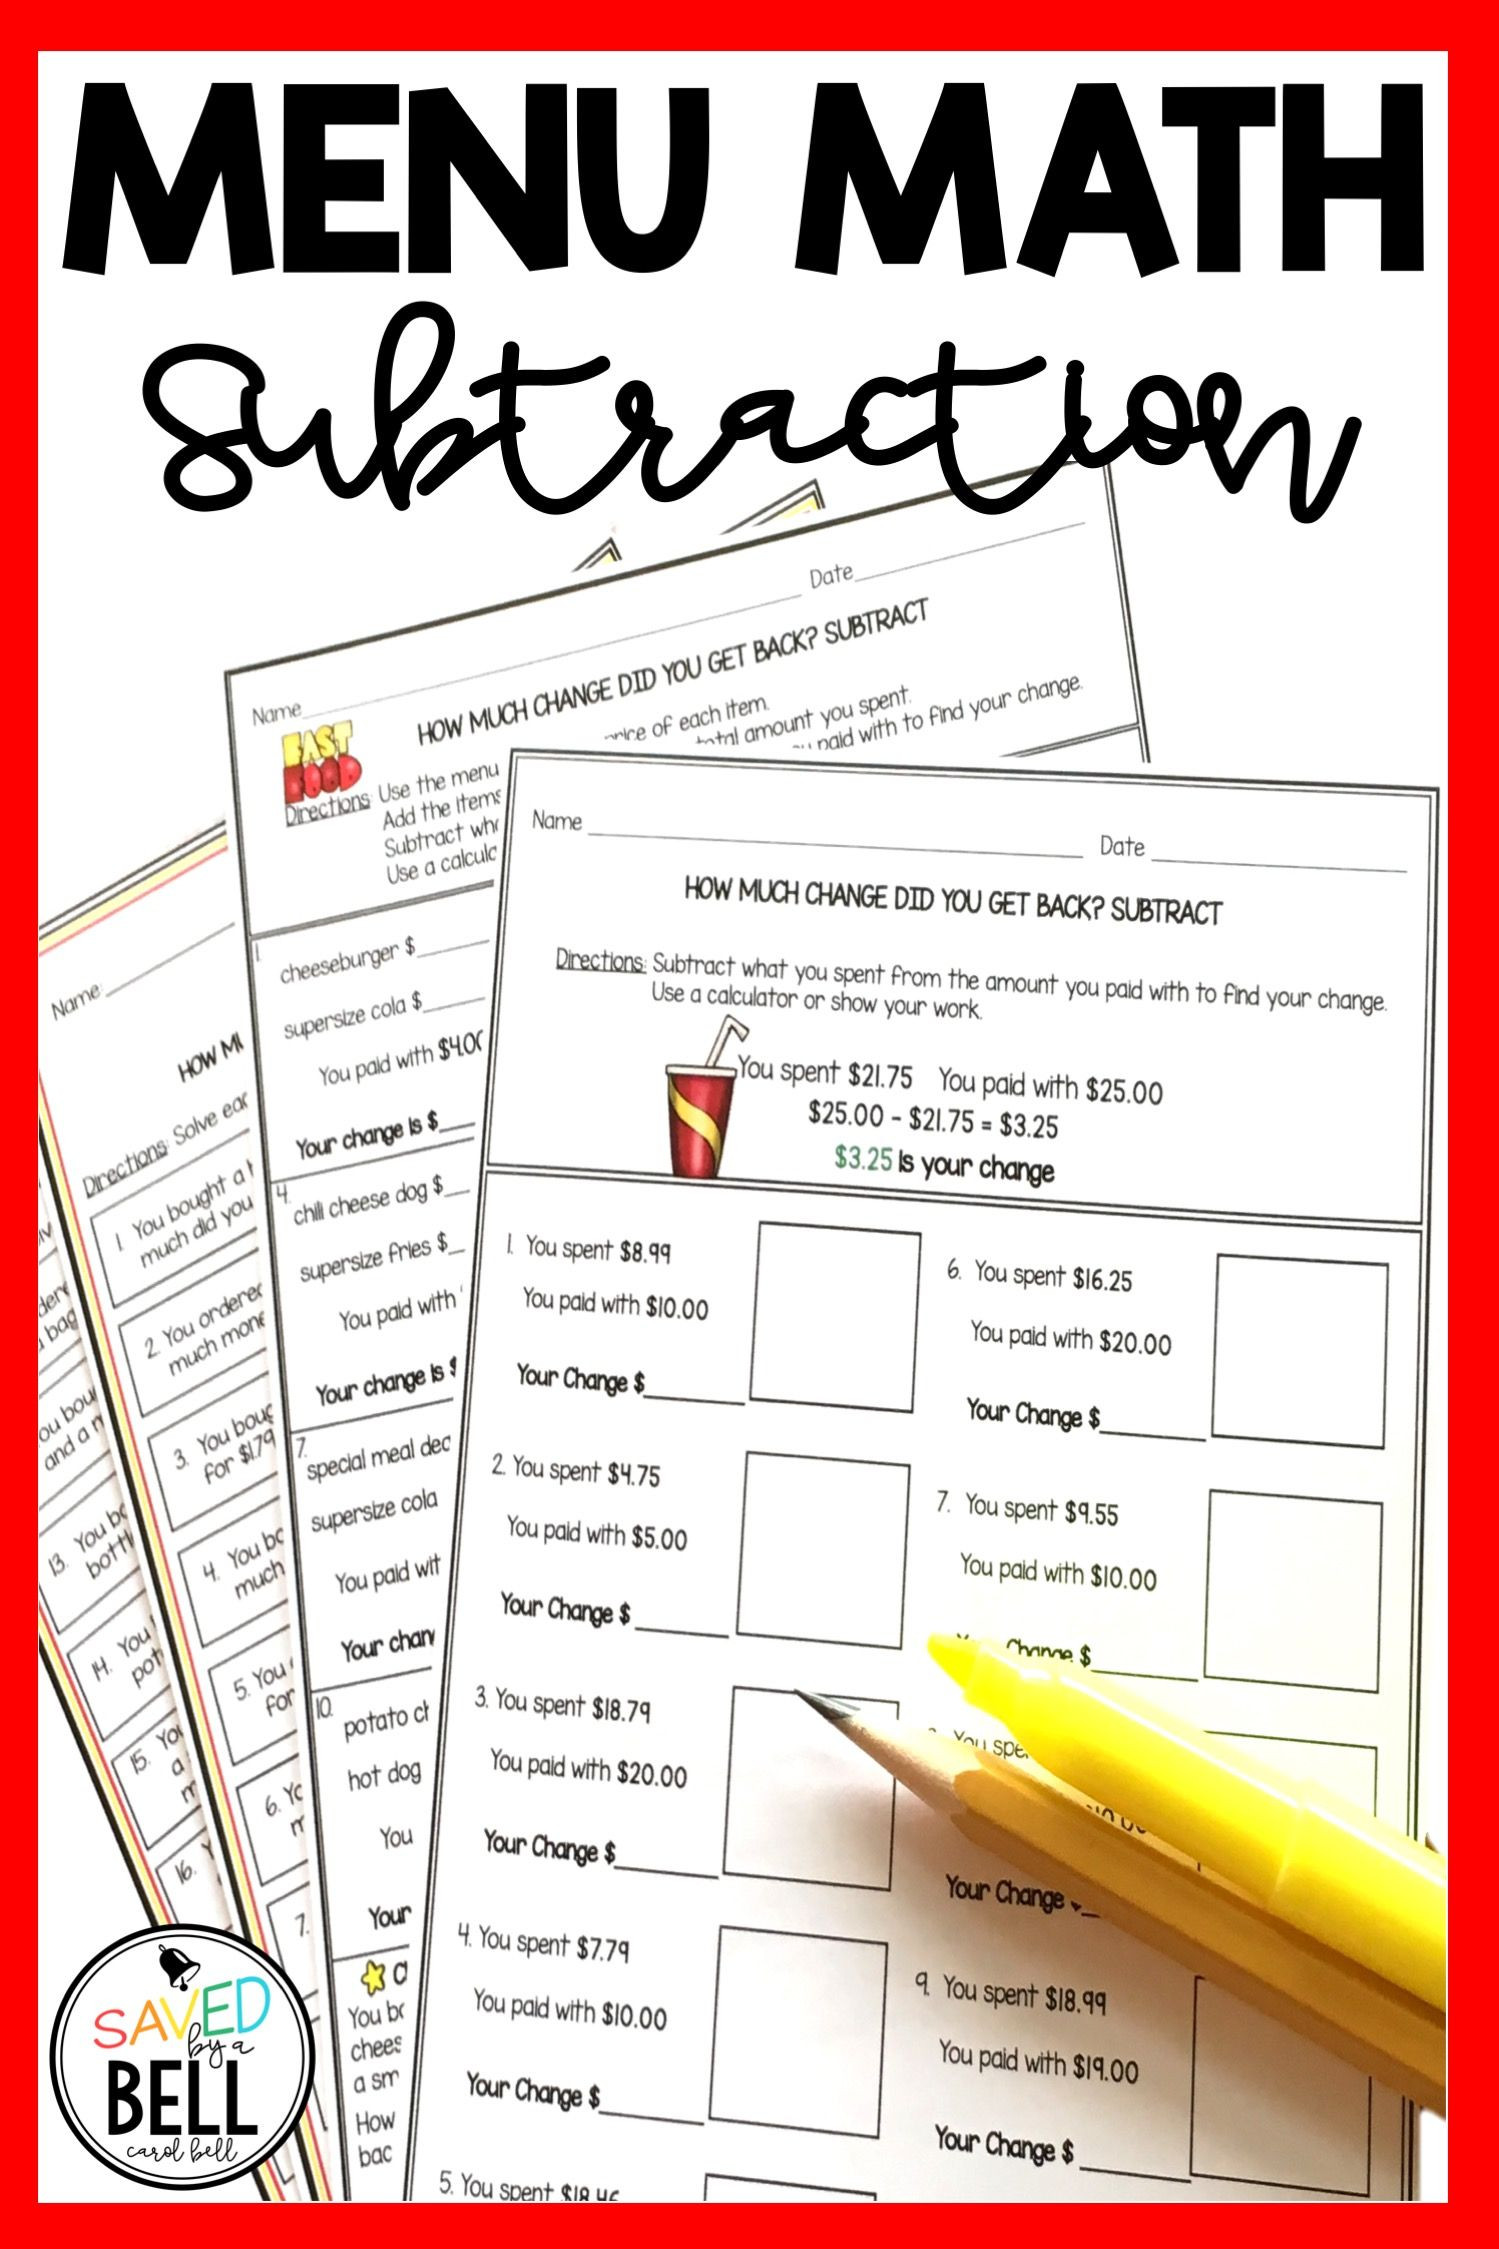 Menu Math Worksheets Printable Subtraction Money Worksheets and Word Problems Menu Math